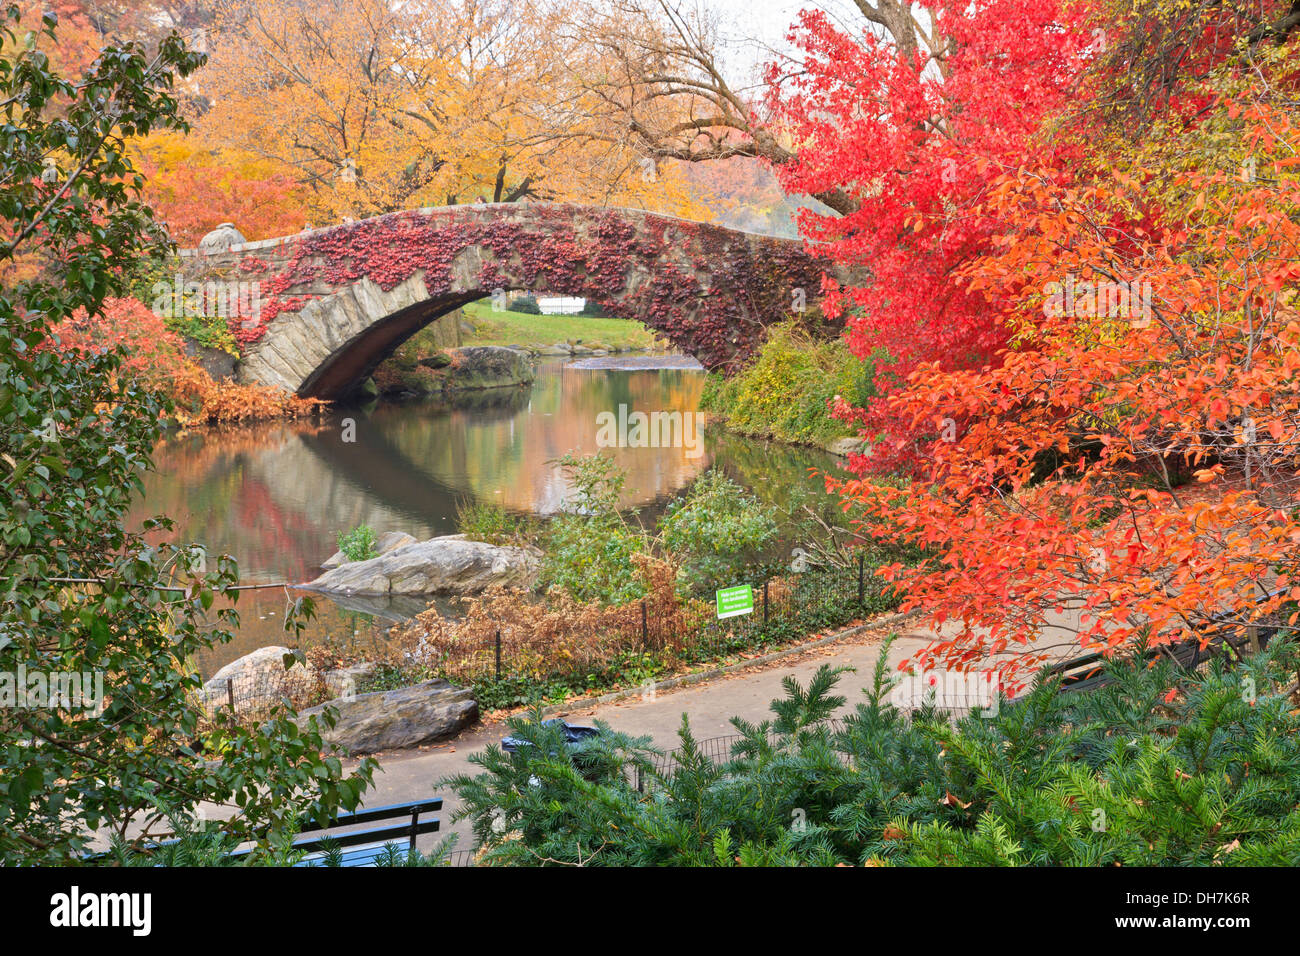 Gapstow Bridge on the Central Park Pond covered in red ivy and surrounded by beautiful fall foliage in New York City - Stock Image